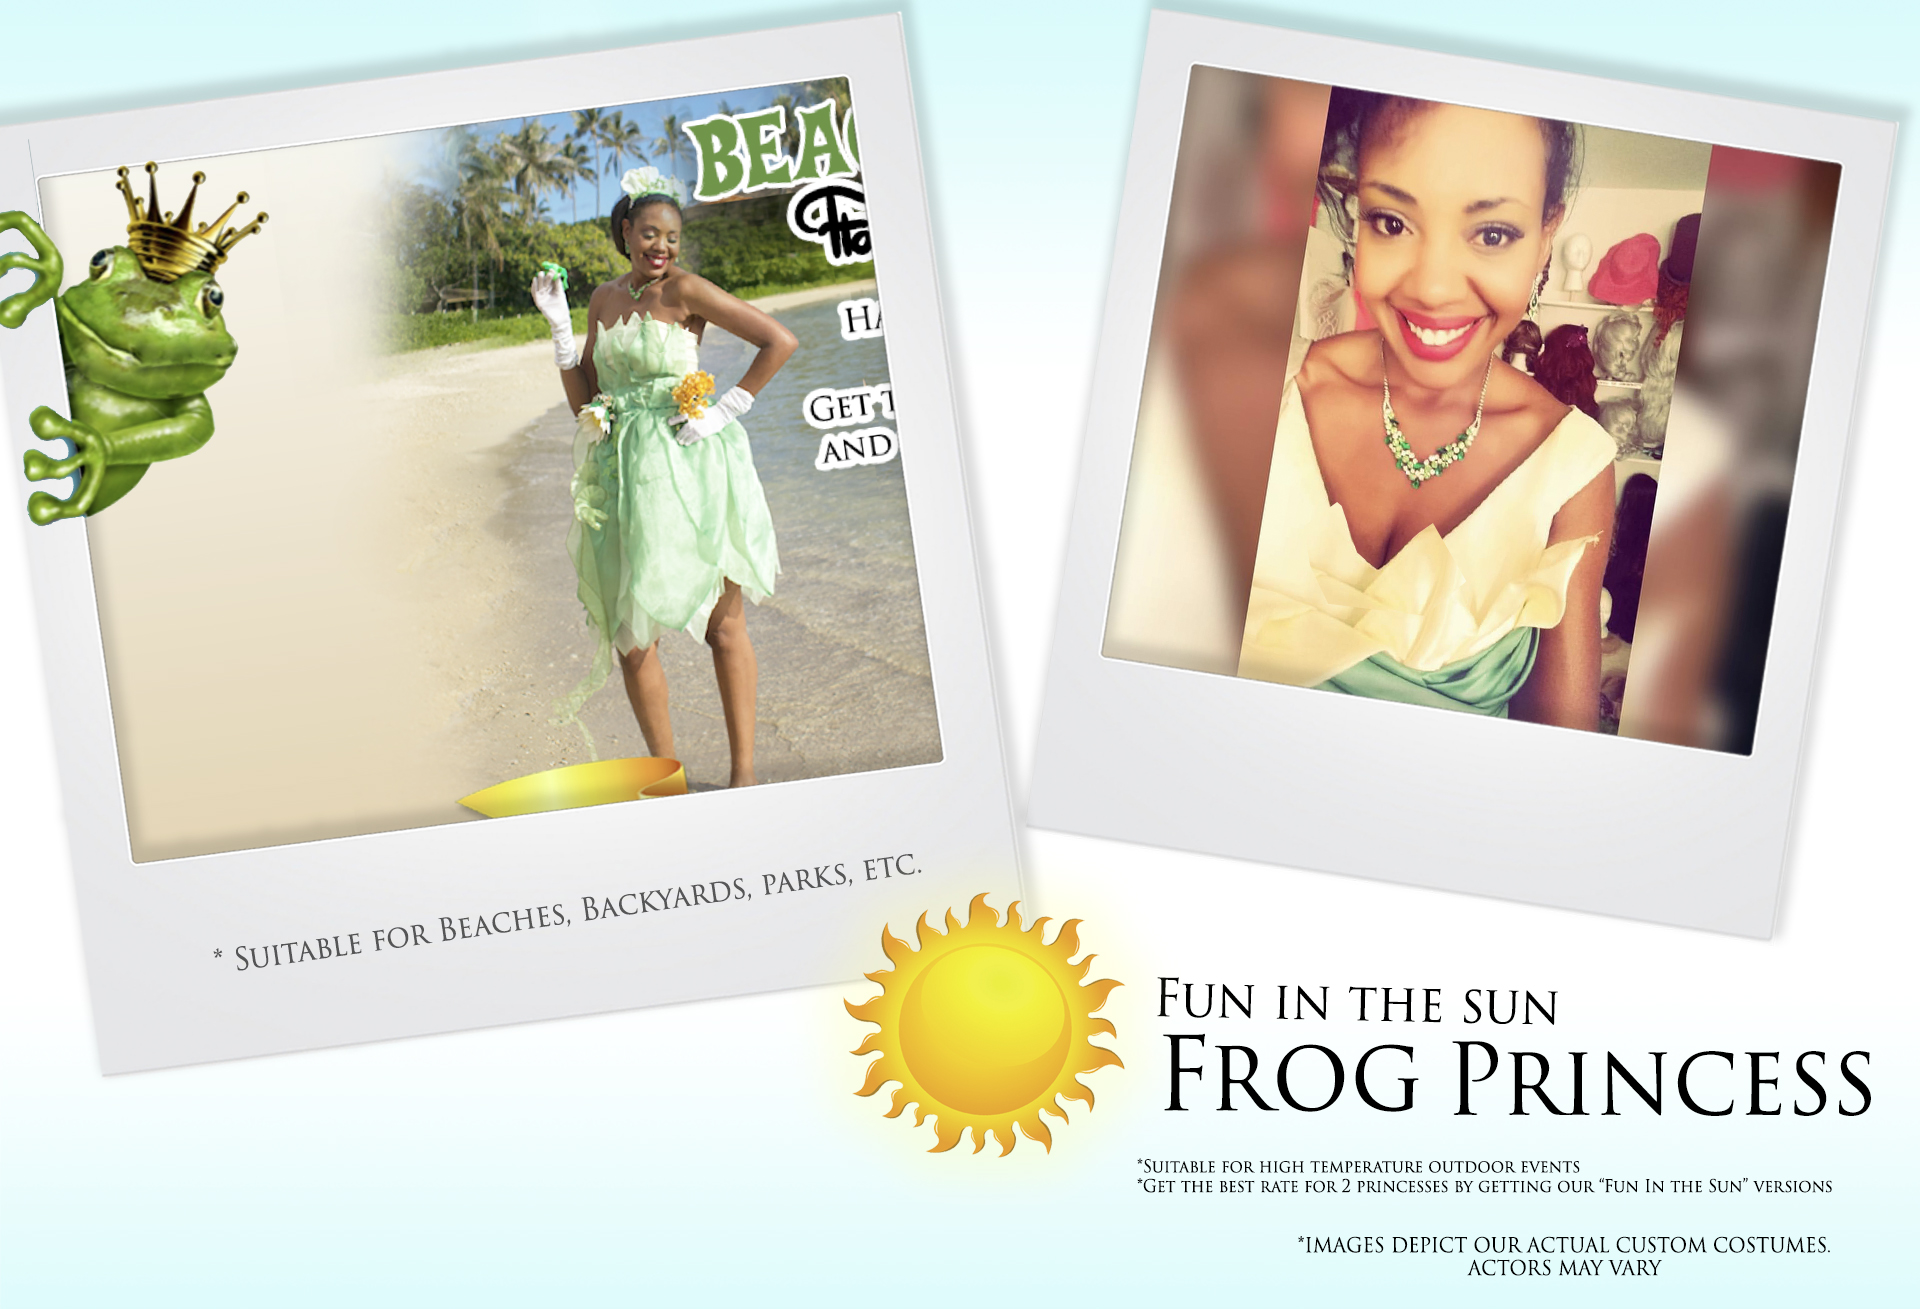 Fun in the Sun Frog Princess